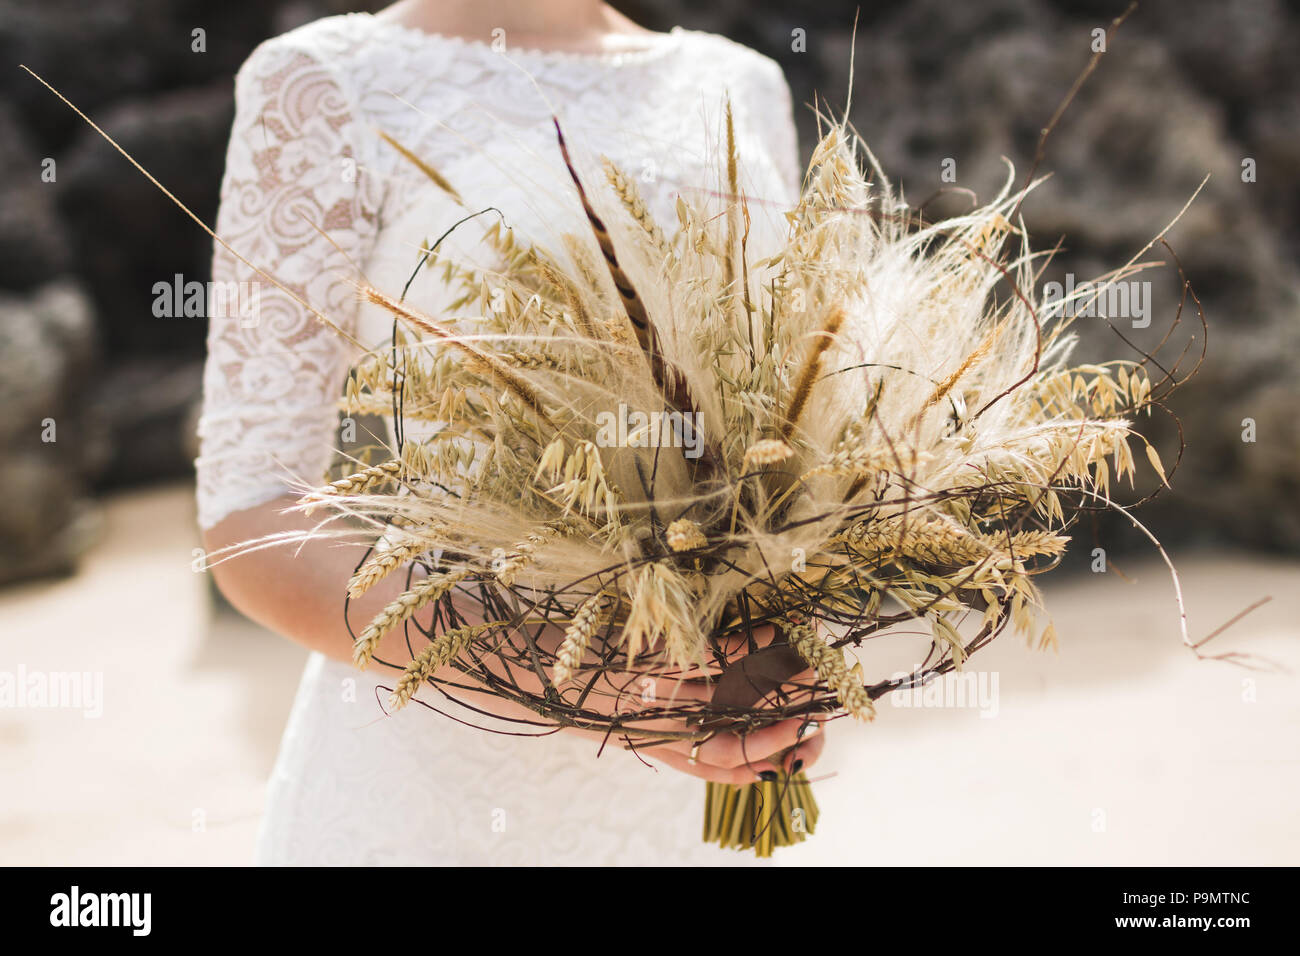 Wedding Bouquet With Dried Flowers And Spikelets Boho Style In